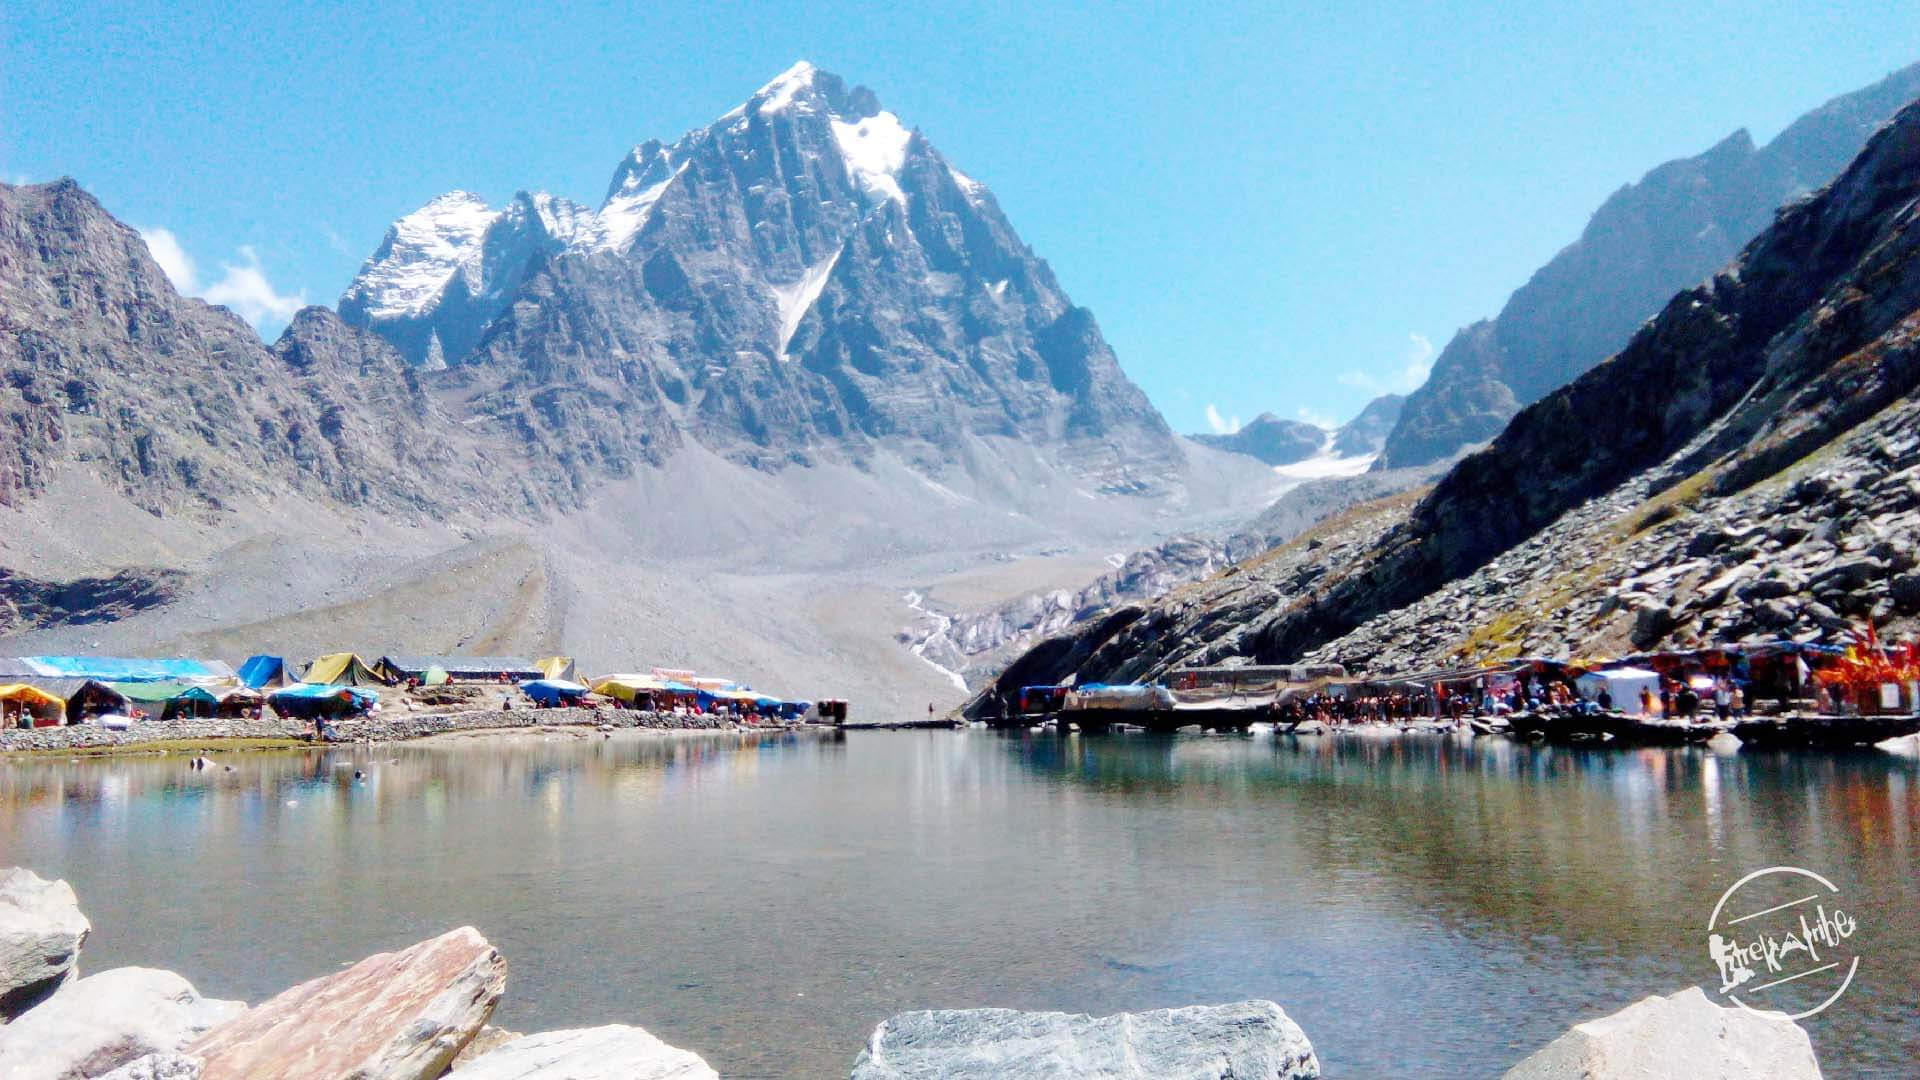 Manimahesh Lake Trek - Manimahesh Lake & kailash Parvat